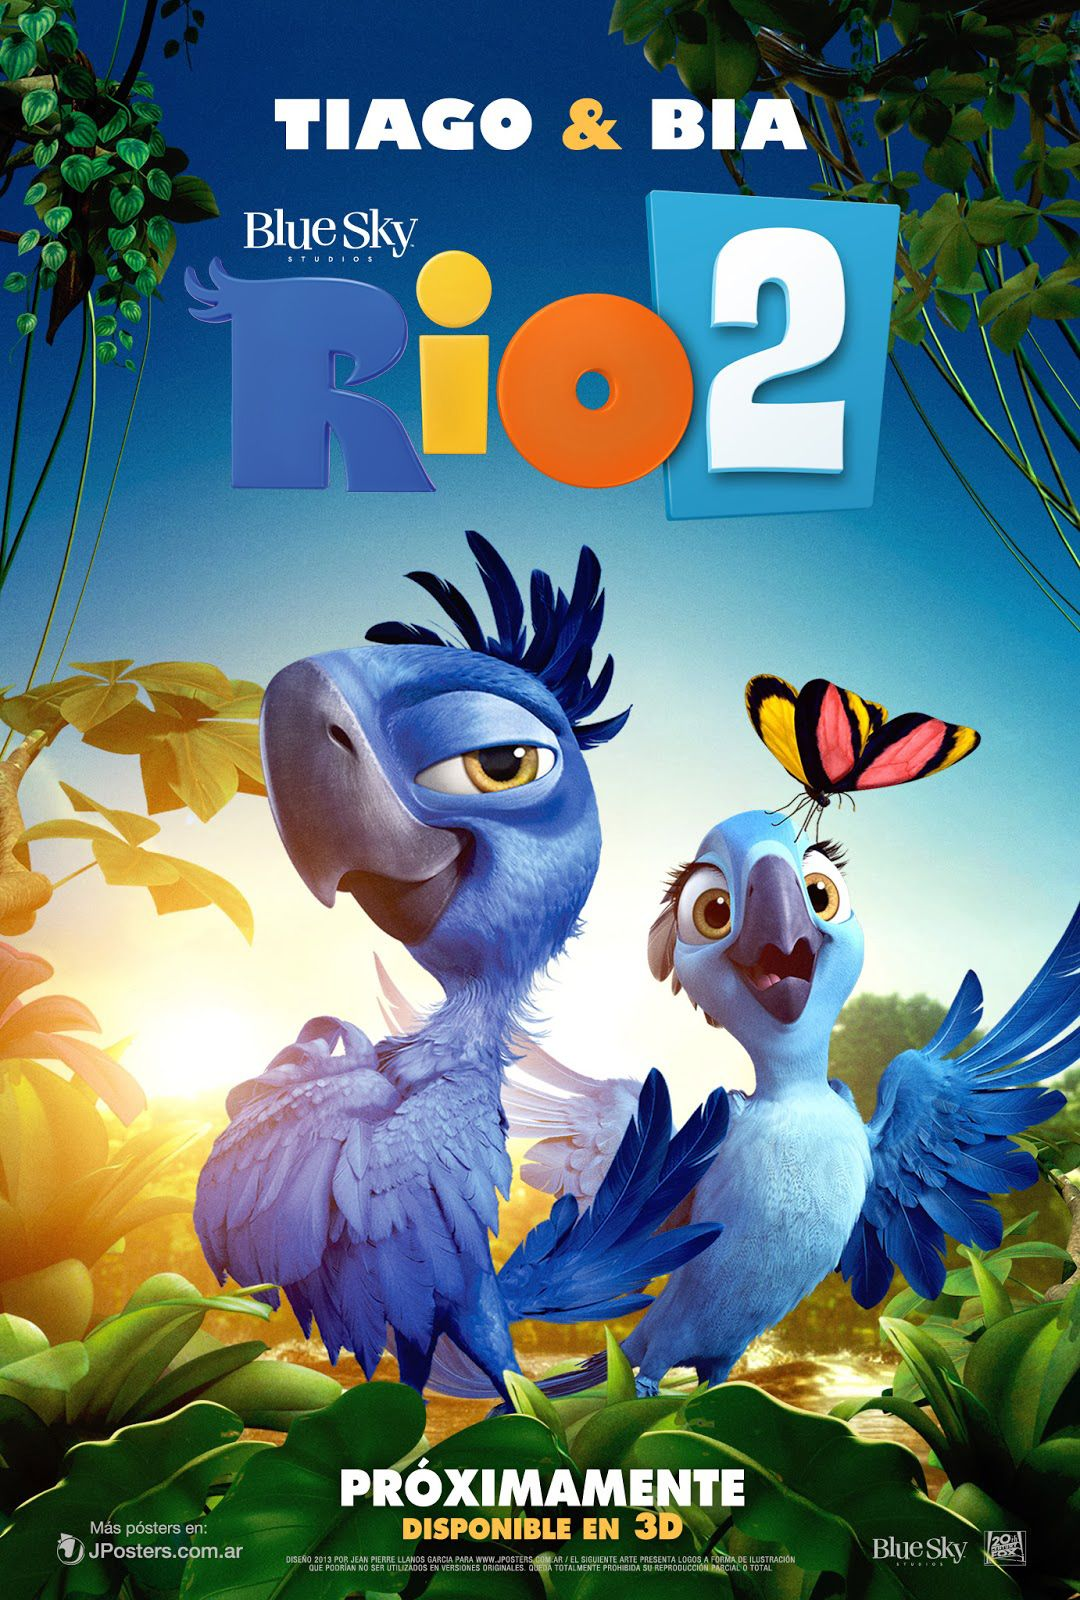 Rio 2 image 2 pins by onlinepaydayloans rio 2 pinterest rio 2 is a 2014 animated english musical adventur movie directed by carlos saldanha featuring the voices of jesse eisenberg voltagebd Images